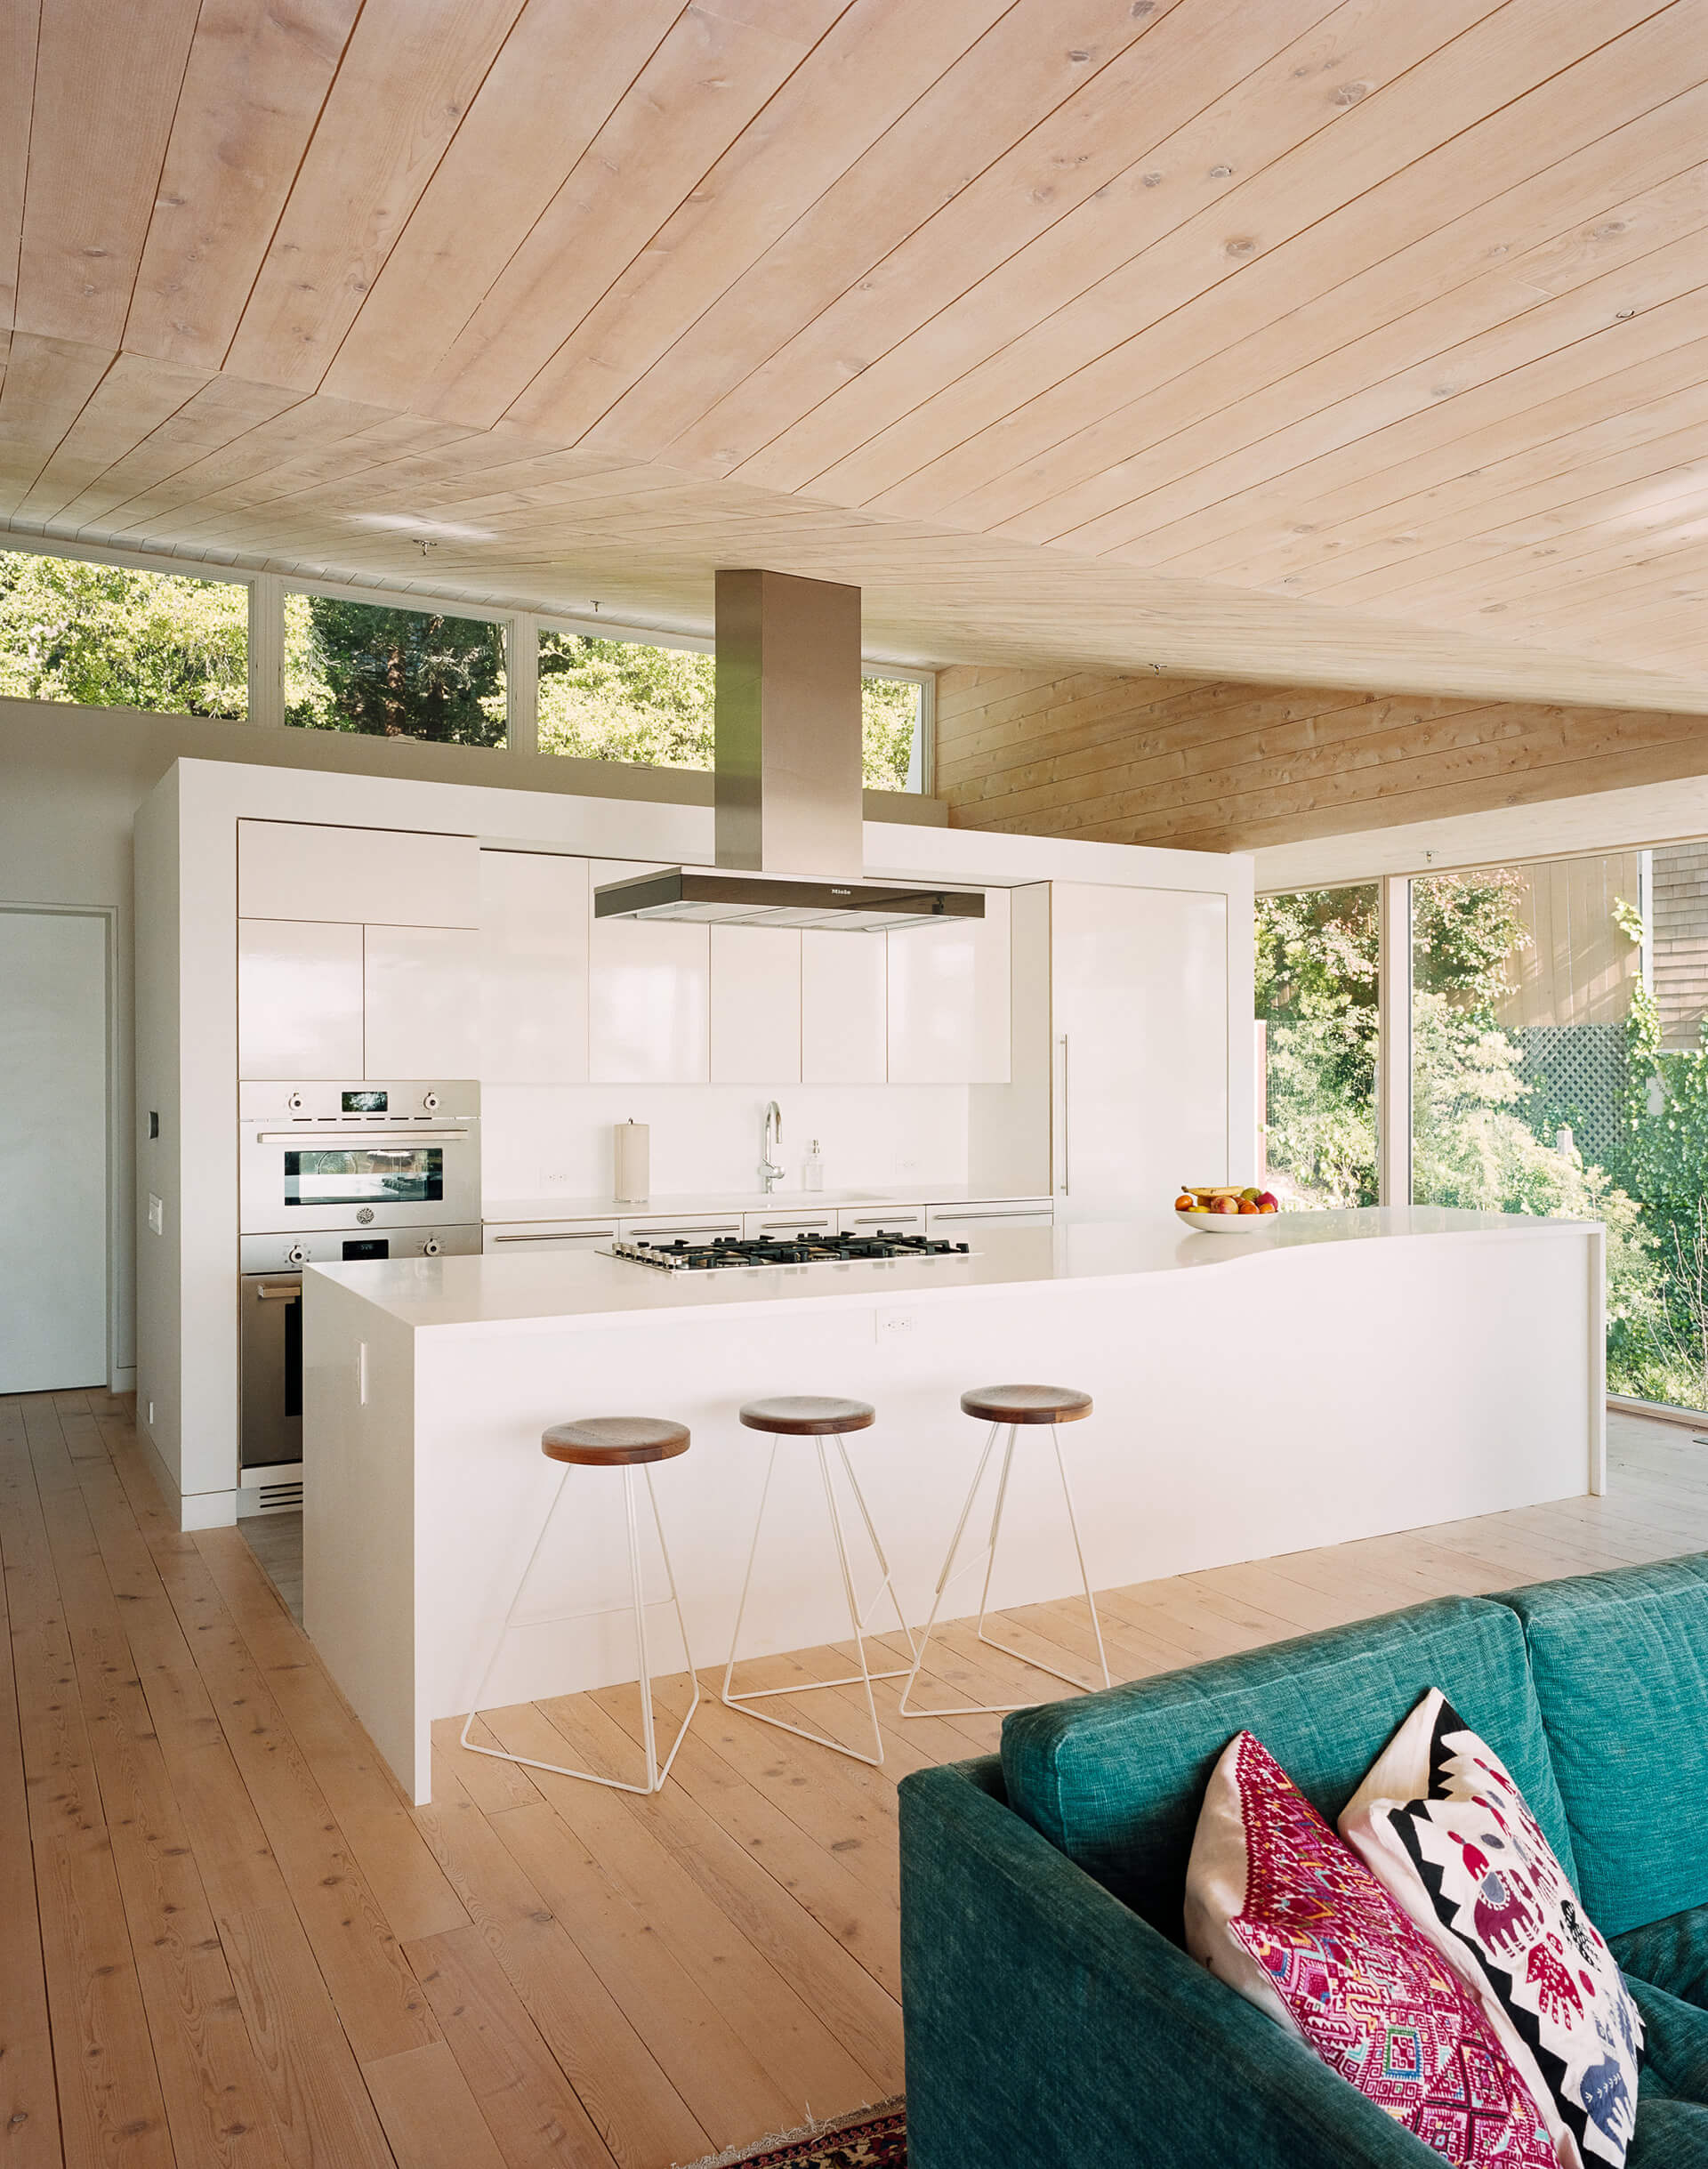 The white kitchen island | House of Light designed by Rangr Studio | STIRworld